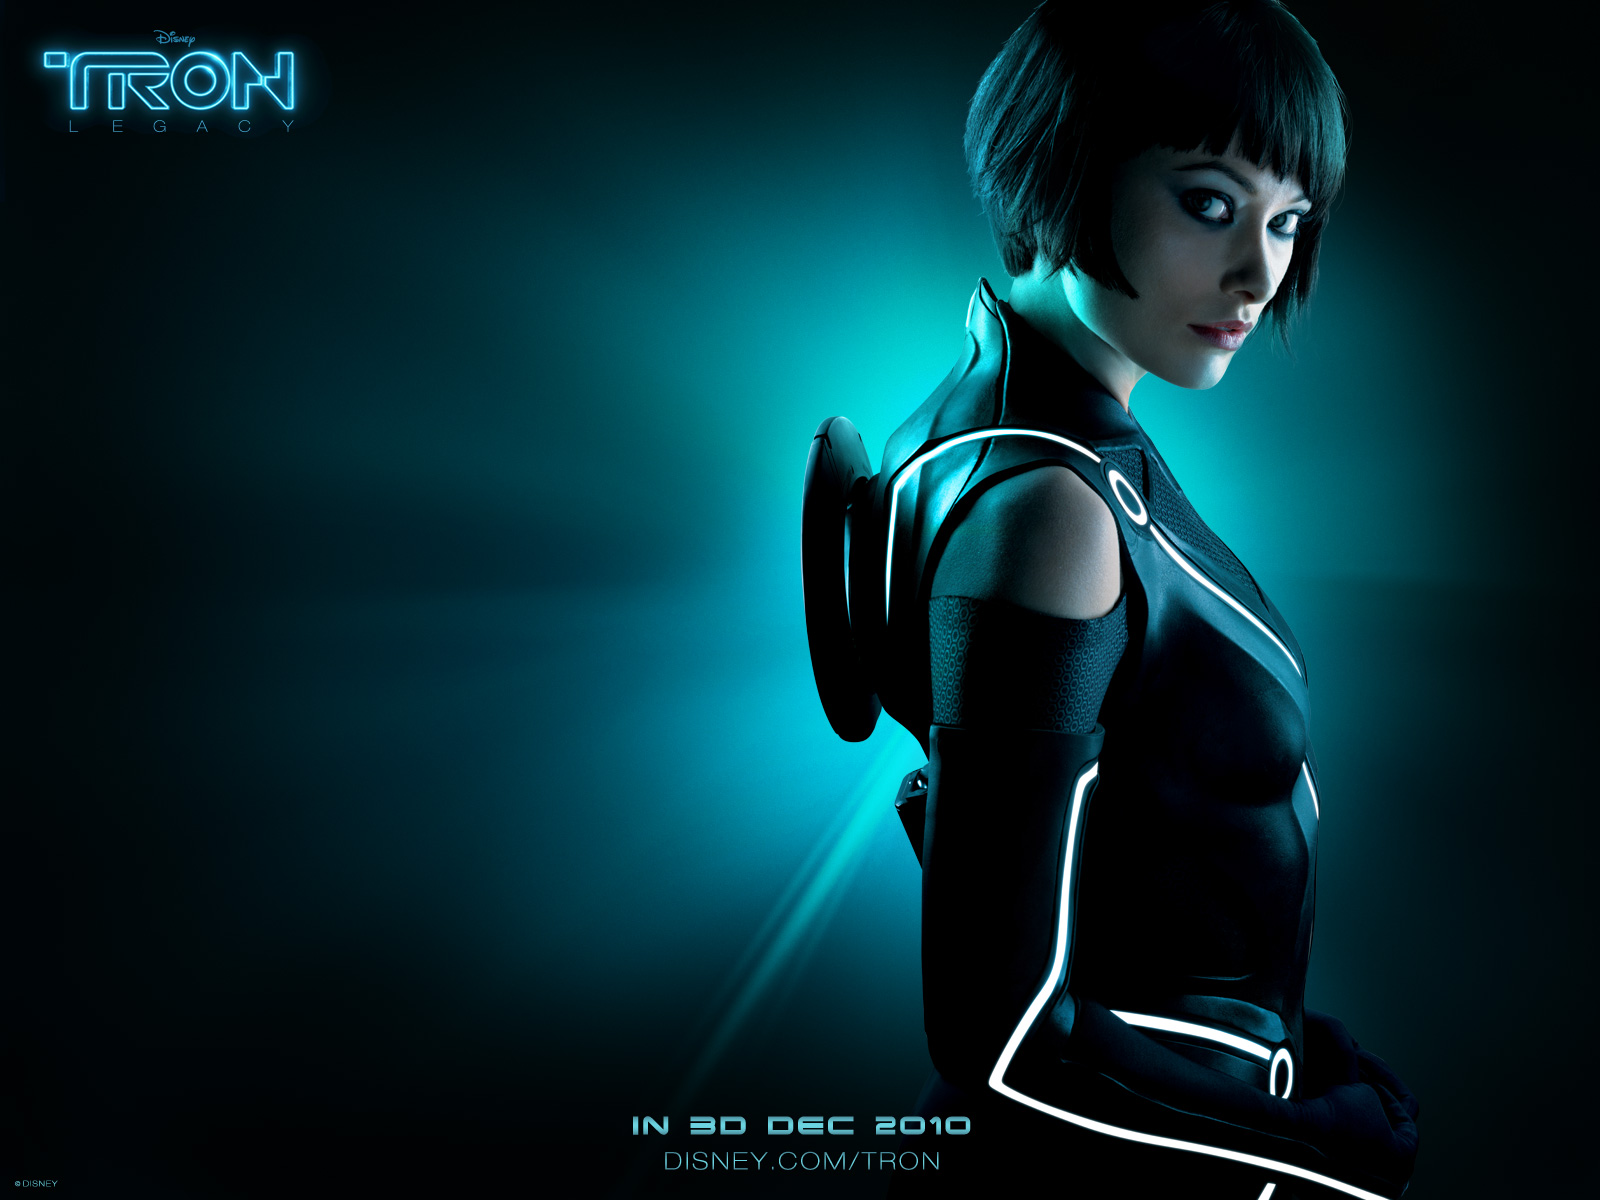 TRON hot girl